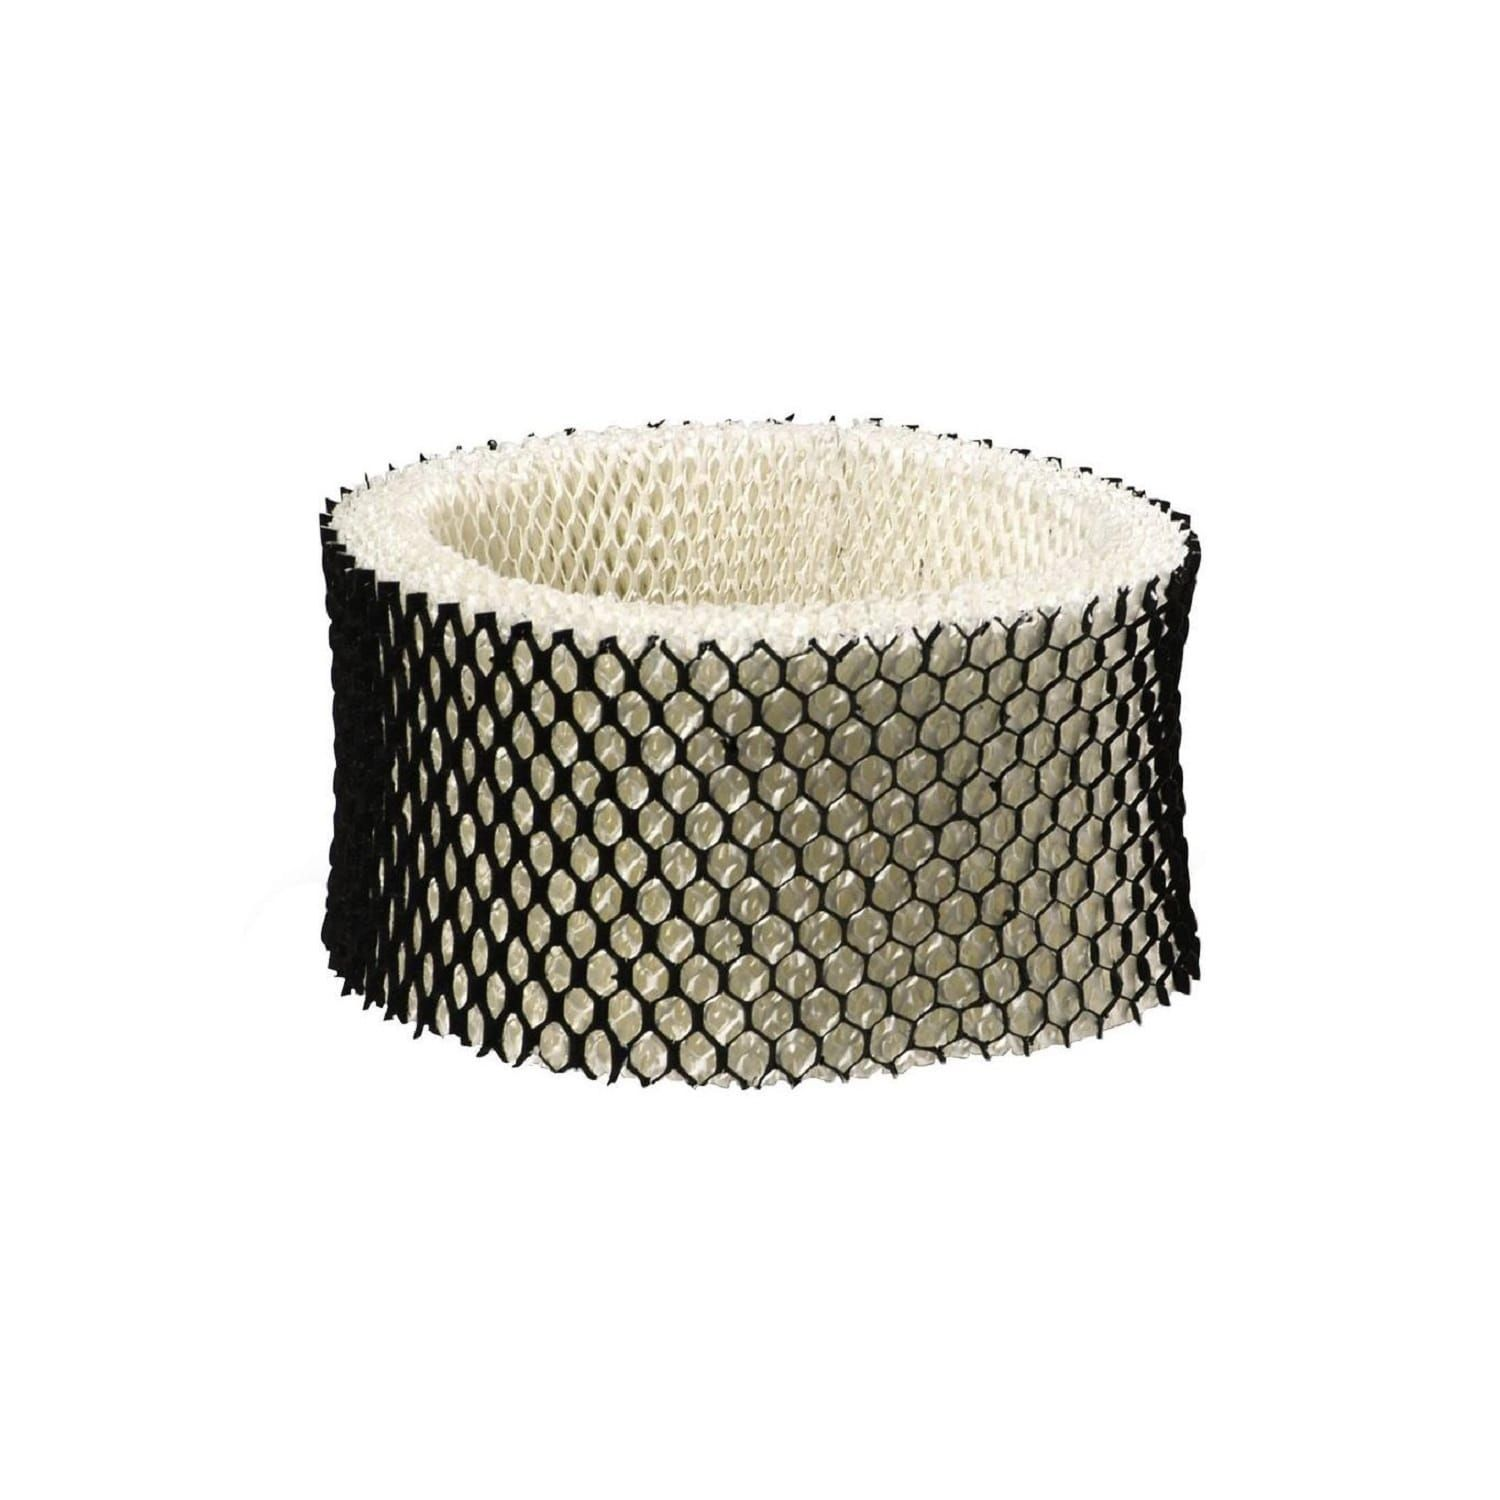 Holmes Humidifier Filter Products Humidifier Filters